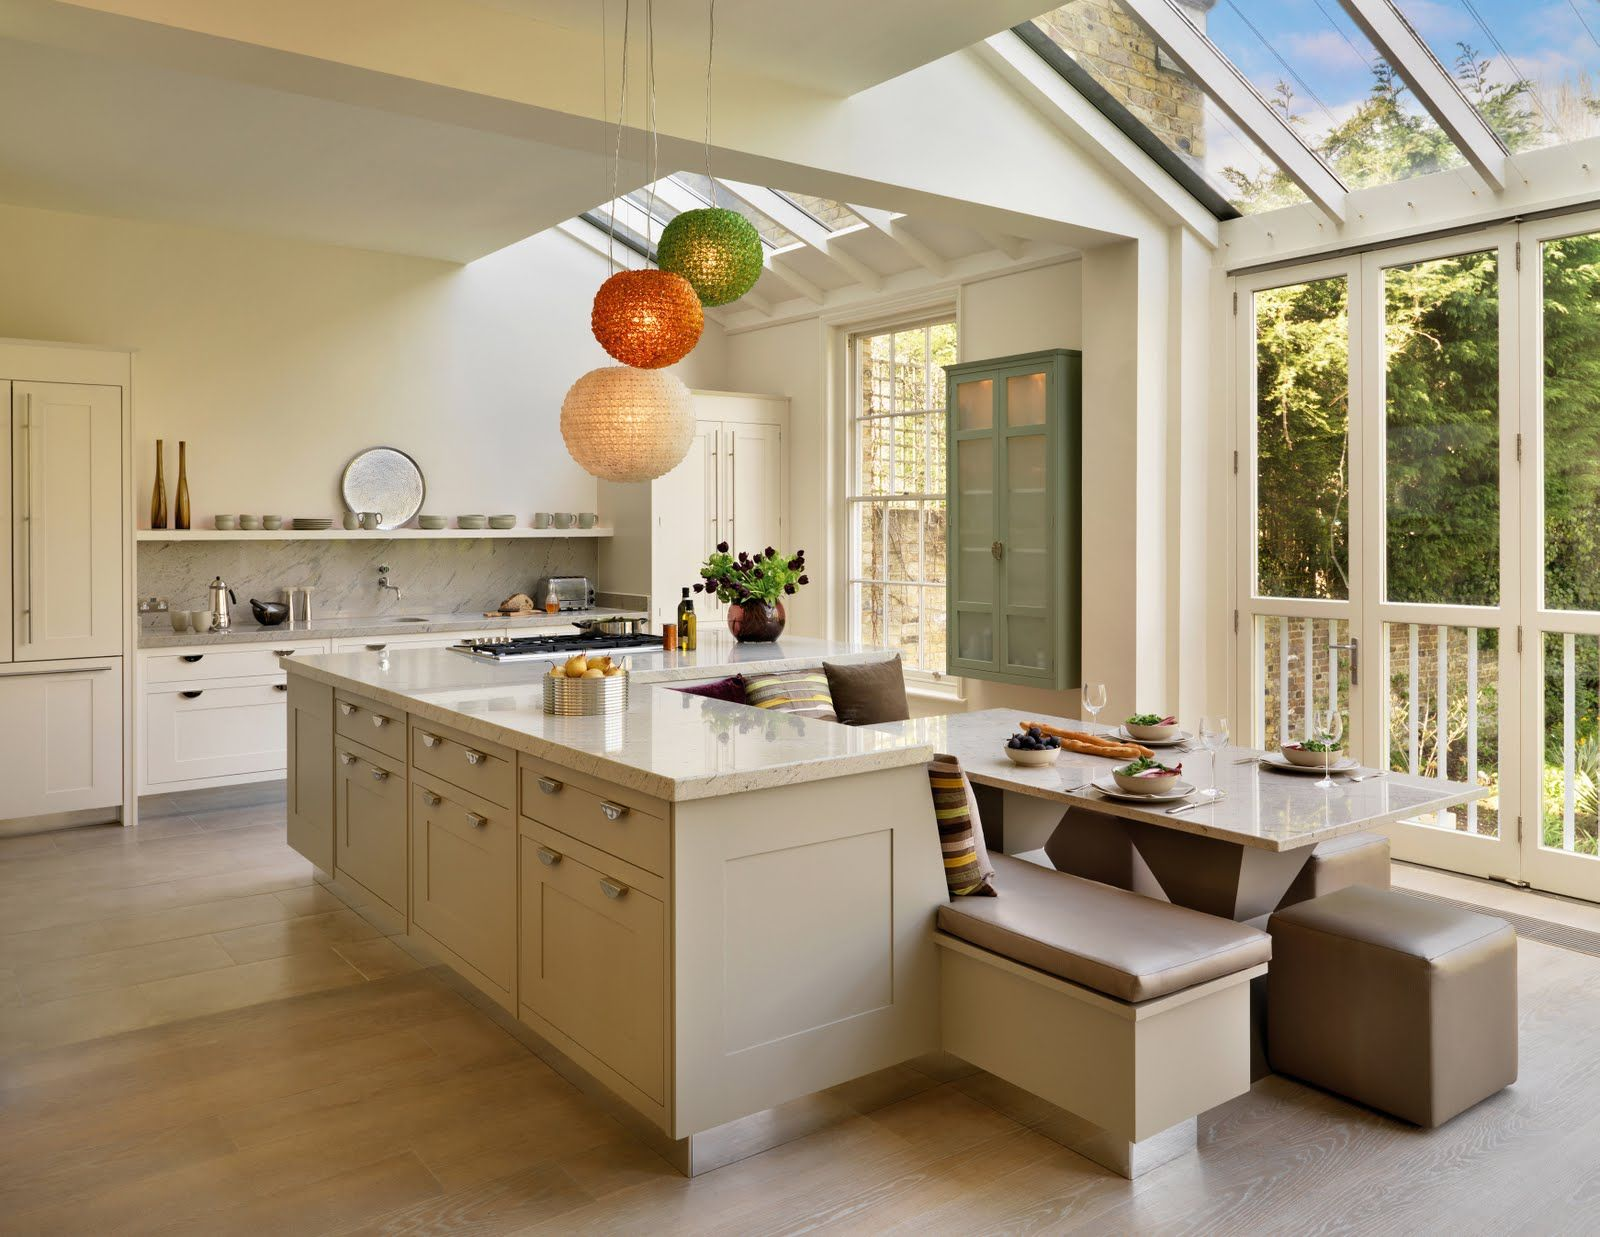 kitchen island design kitchen island design images about Kitchen Islands Designs and Ideas on Pinterest